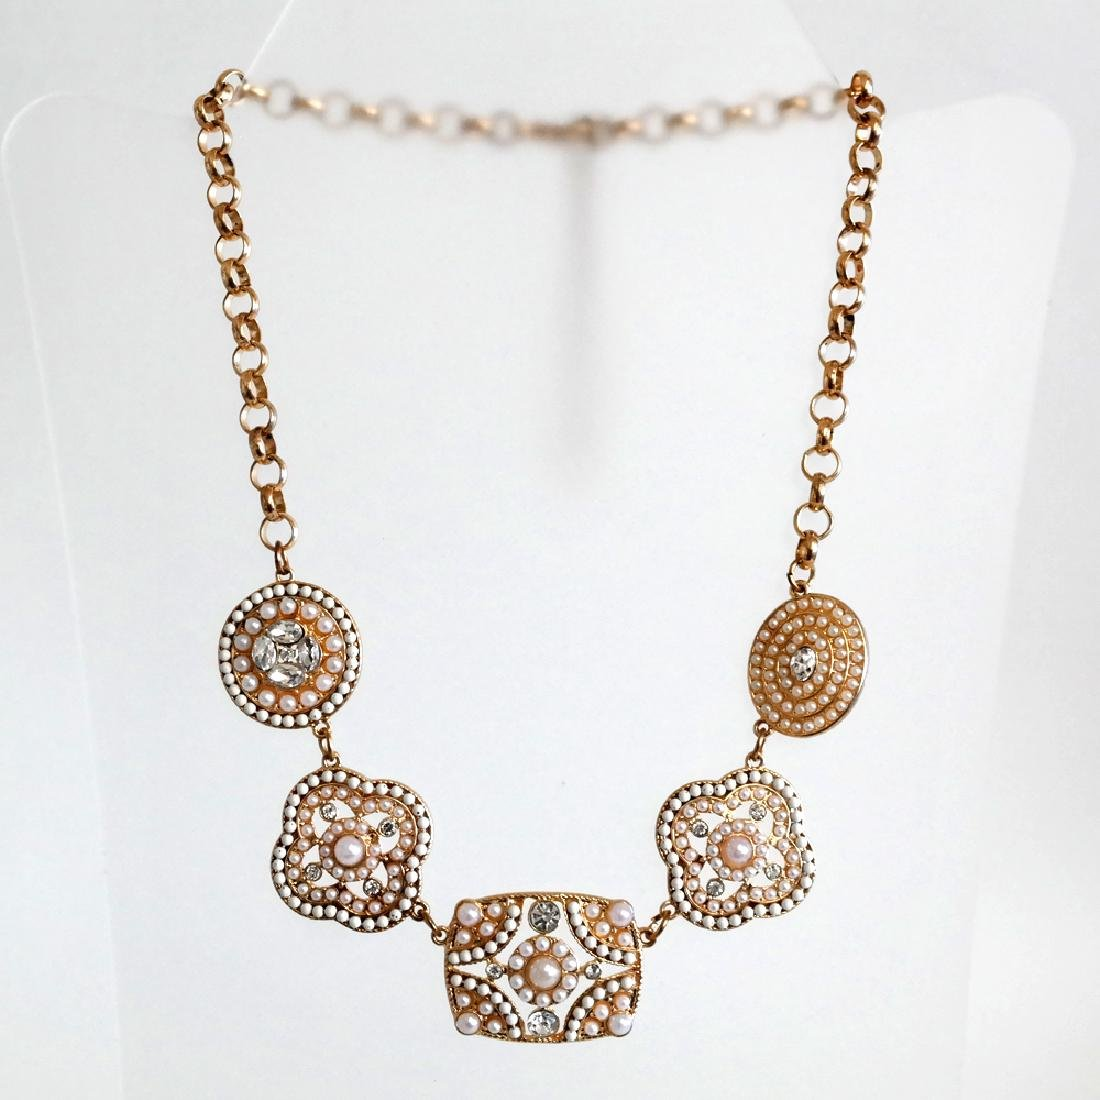 Gold tone necklace with white rhinestones and white - 2